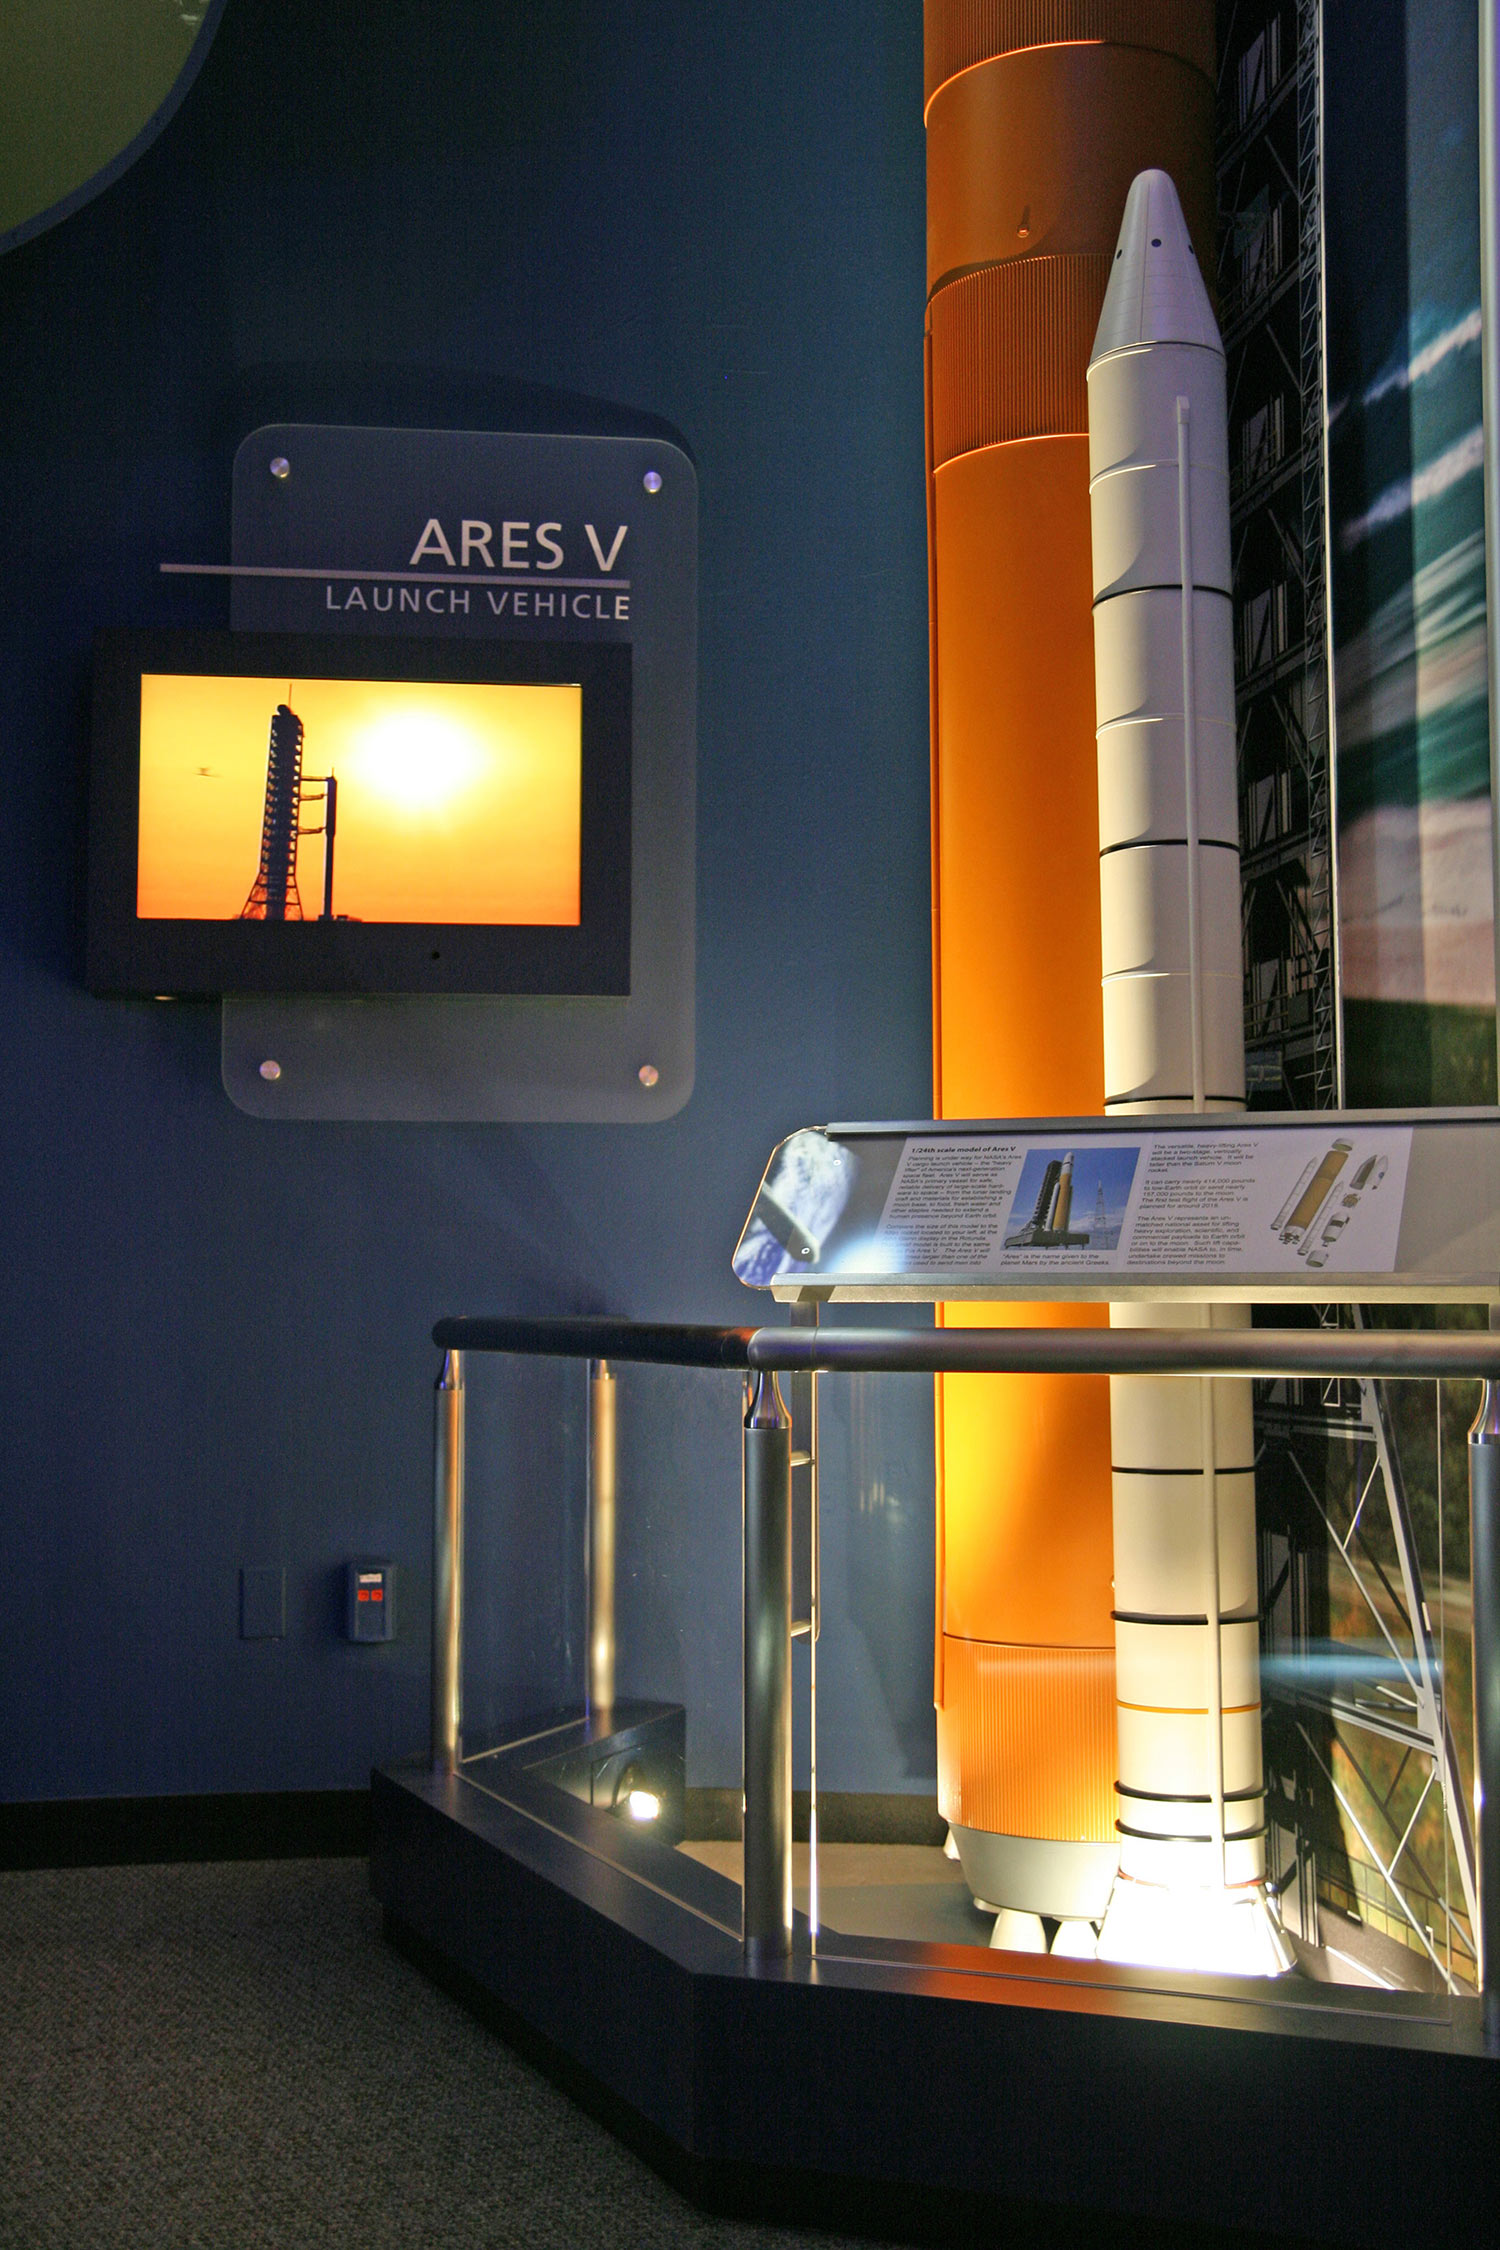 Ares Rocket Exhibit